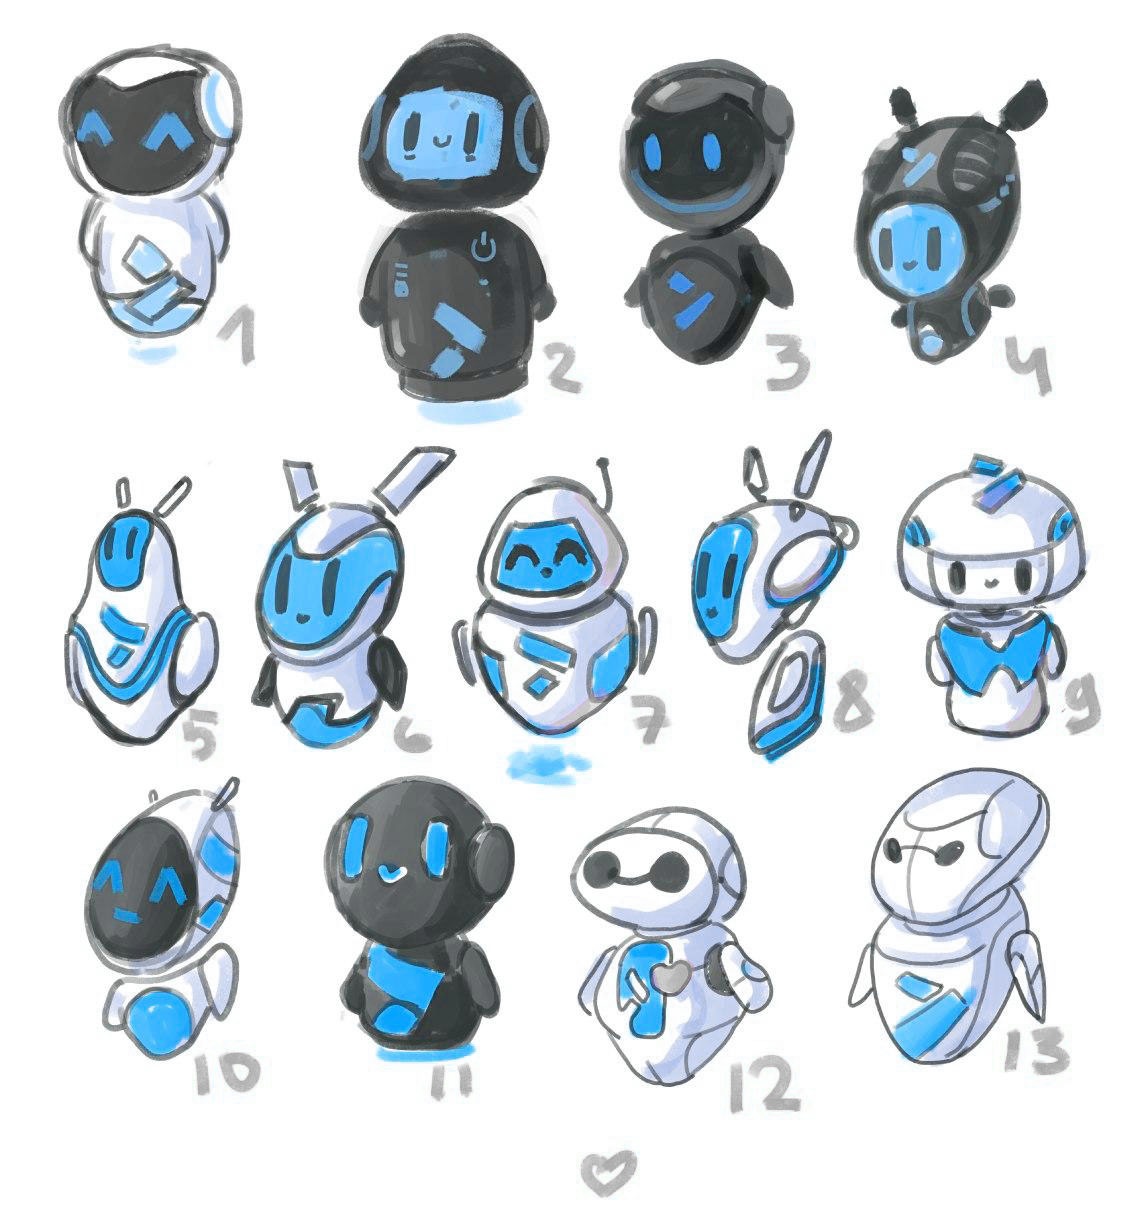 Bank mascot sketches. The robot design, shape selection. The robot for Altbank, drawing versions of the robot.